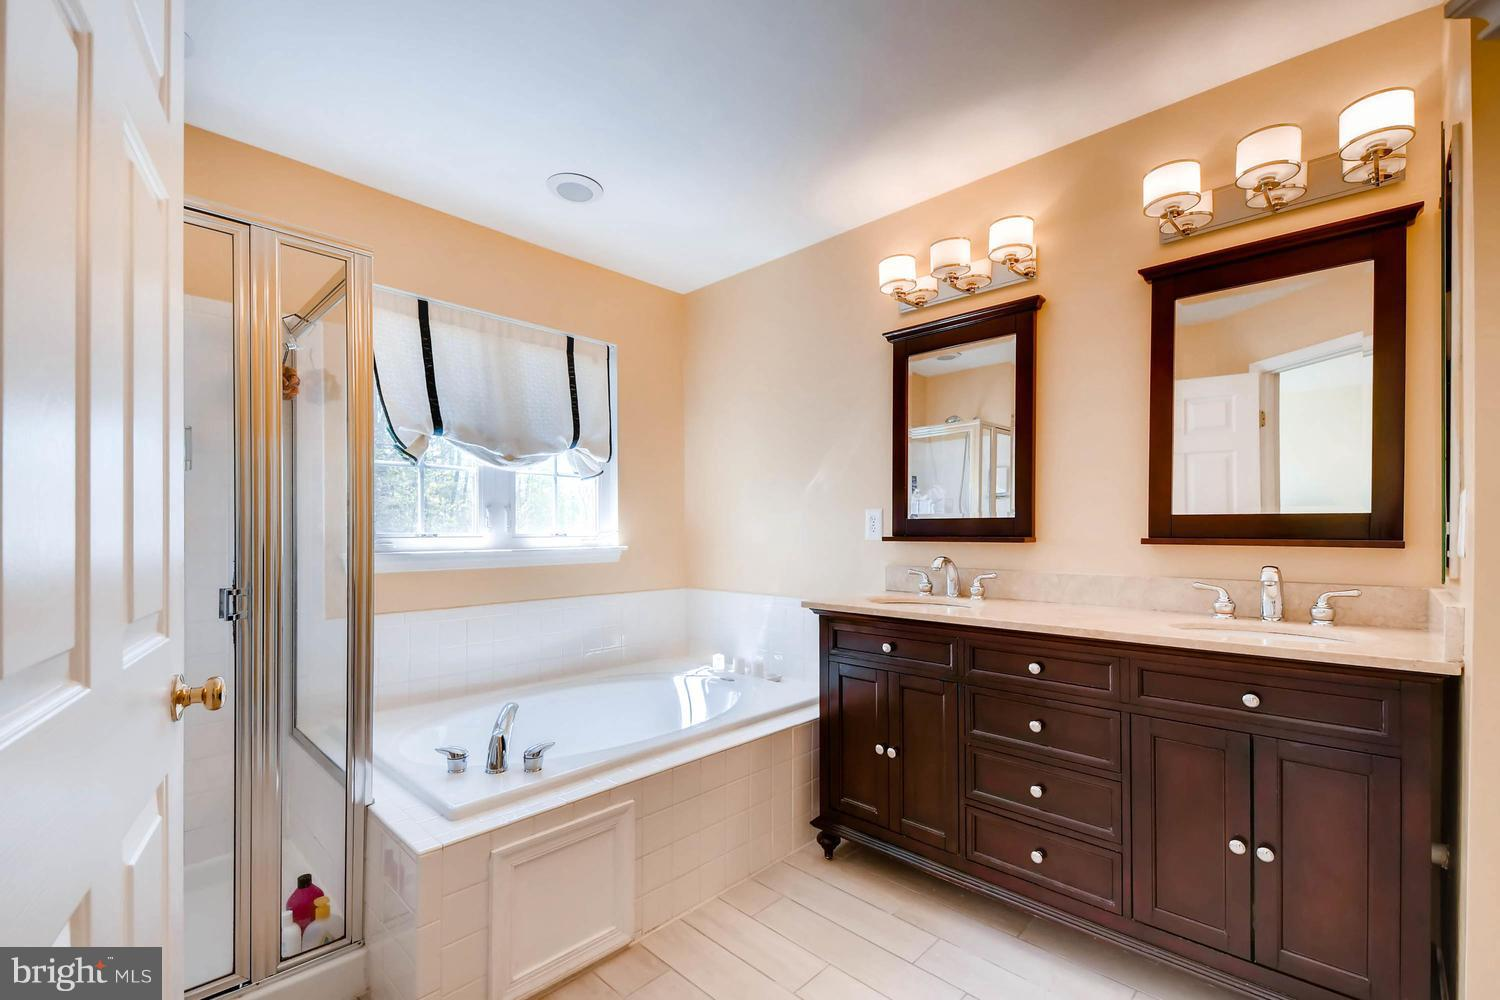 2831 Settlers View Dr, Odenton, MD, 21113